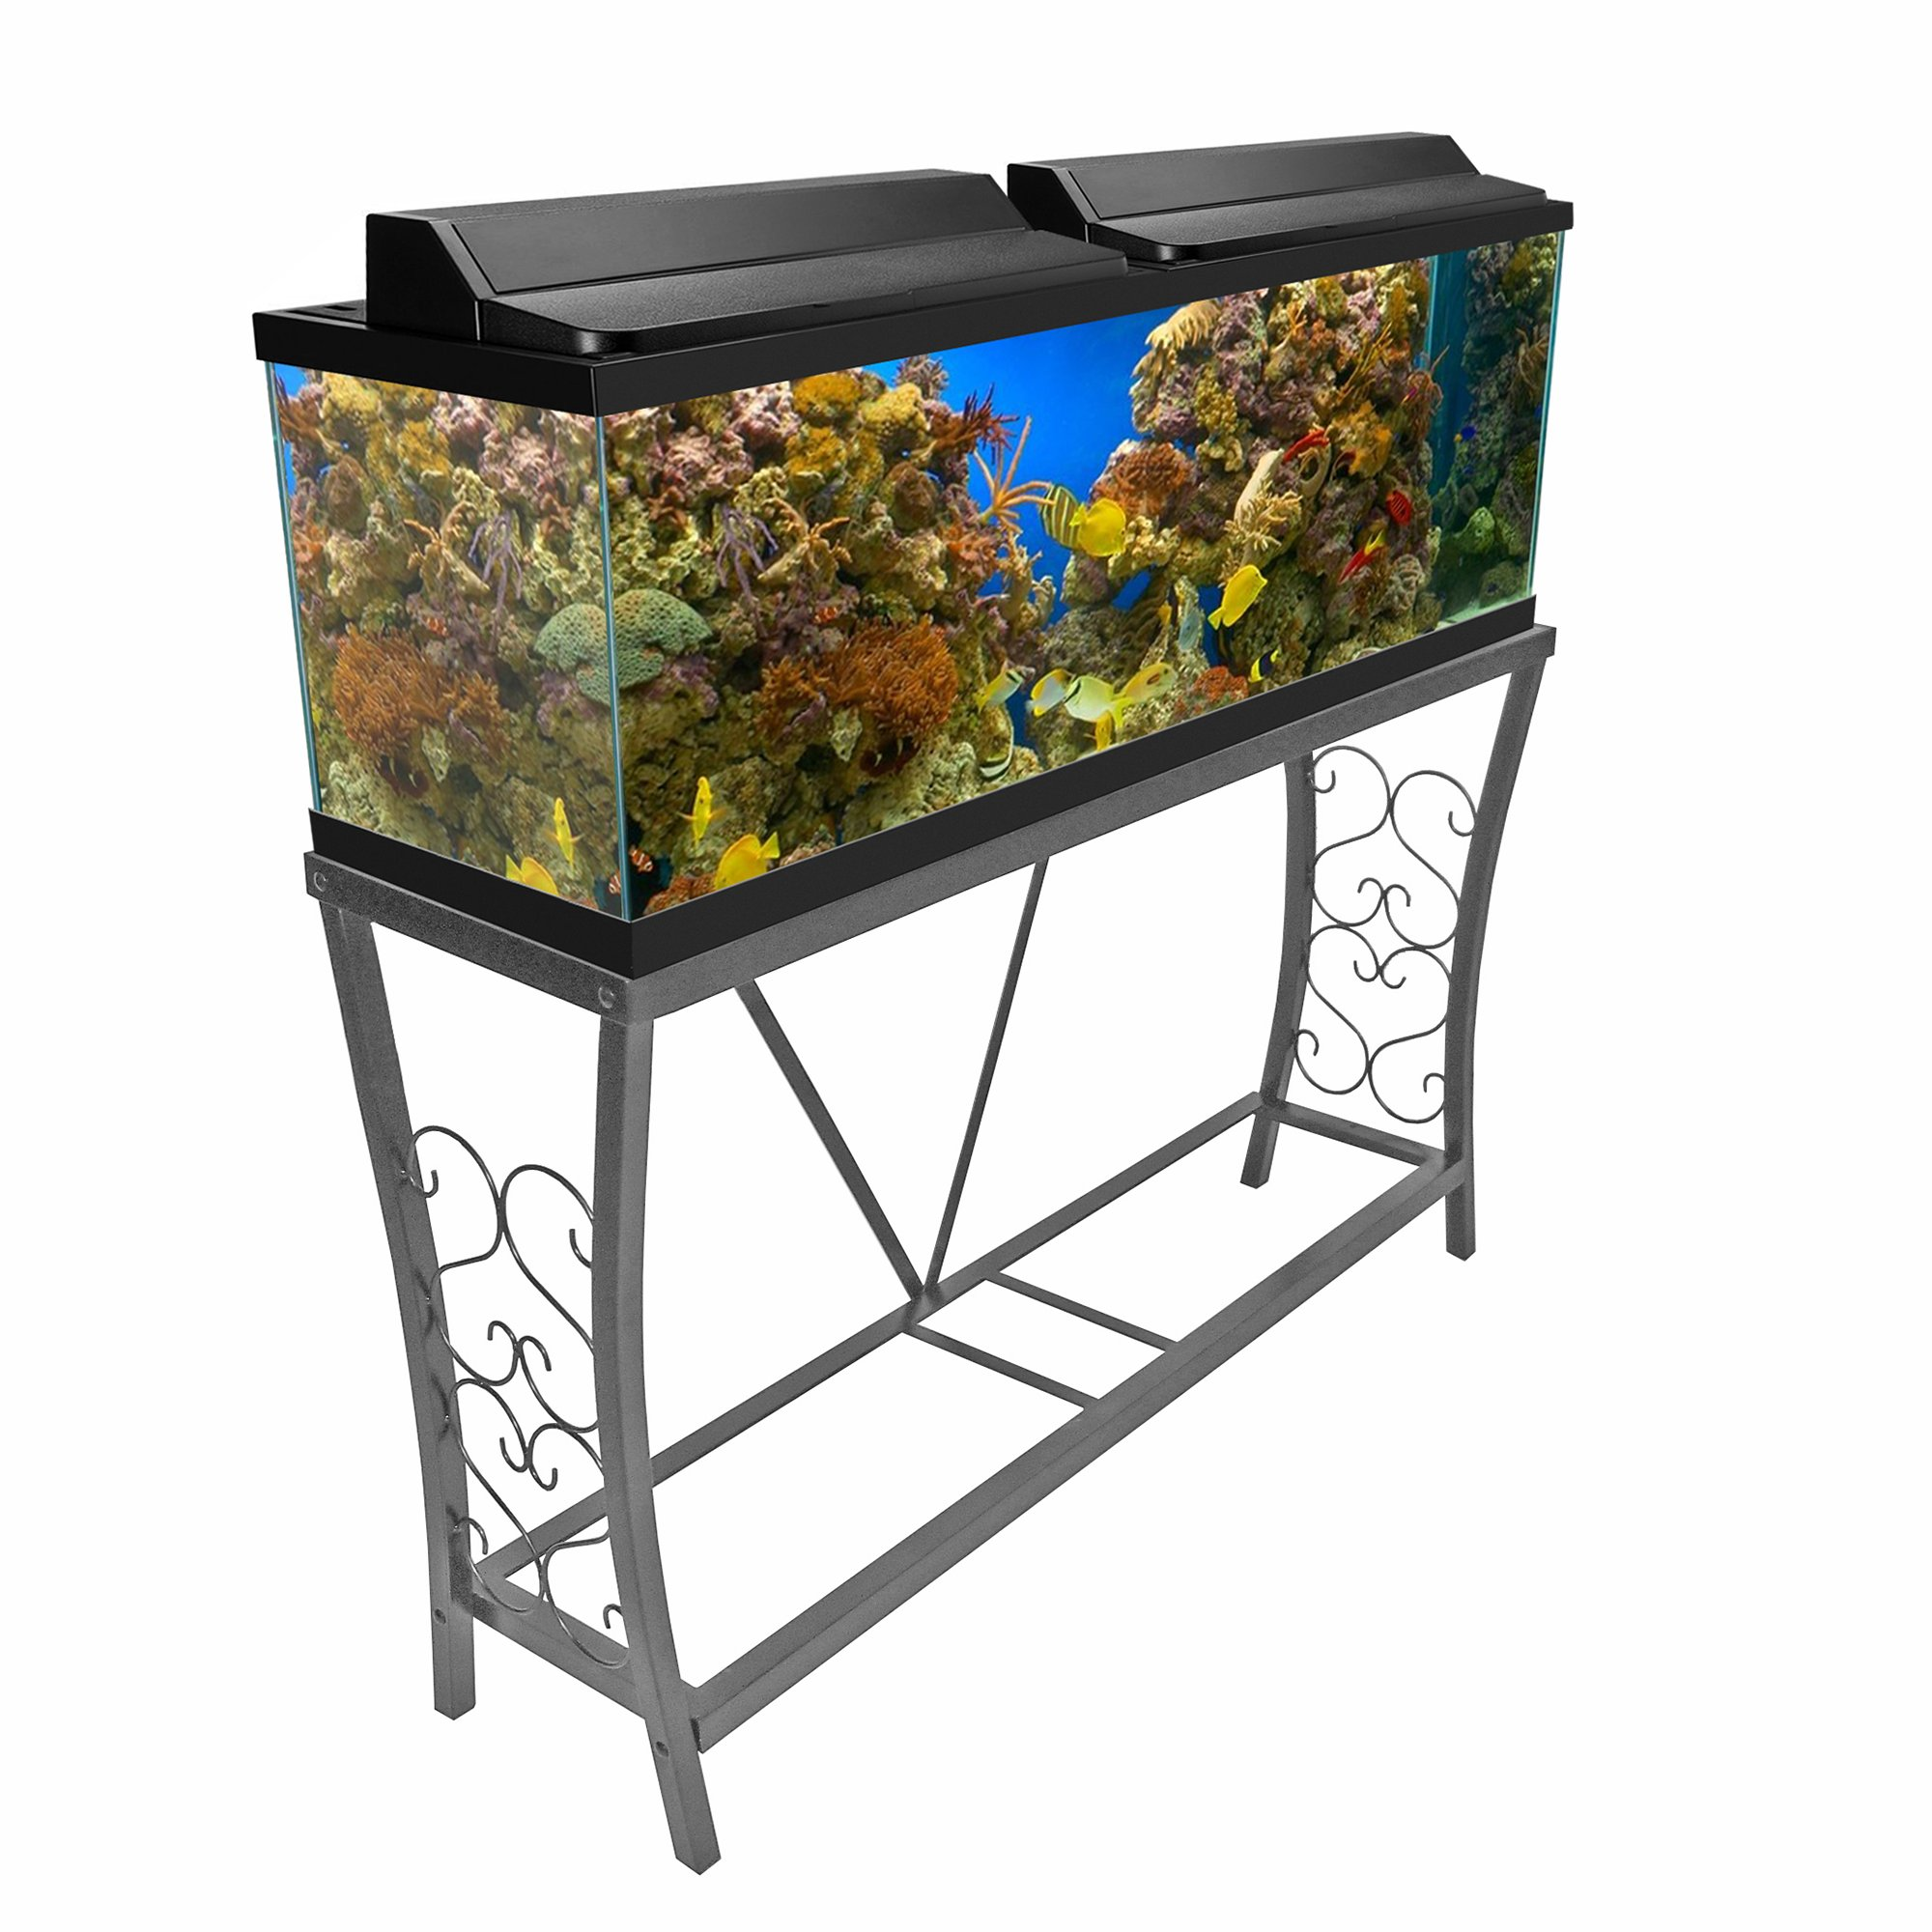 Aquatic fundamentals silver vein scroll aquarium stand 55 for 55 gallon fish tank for sale